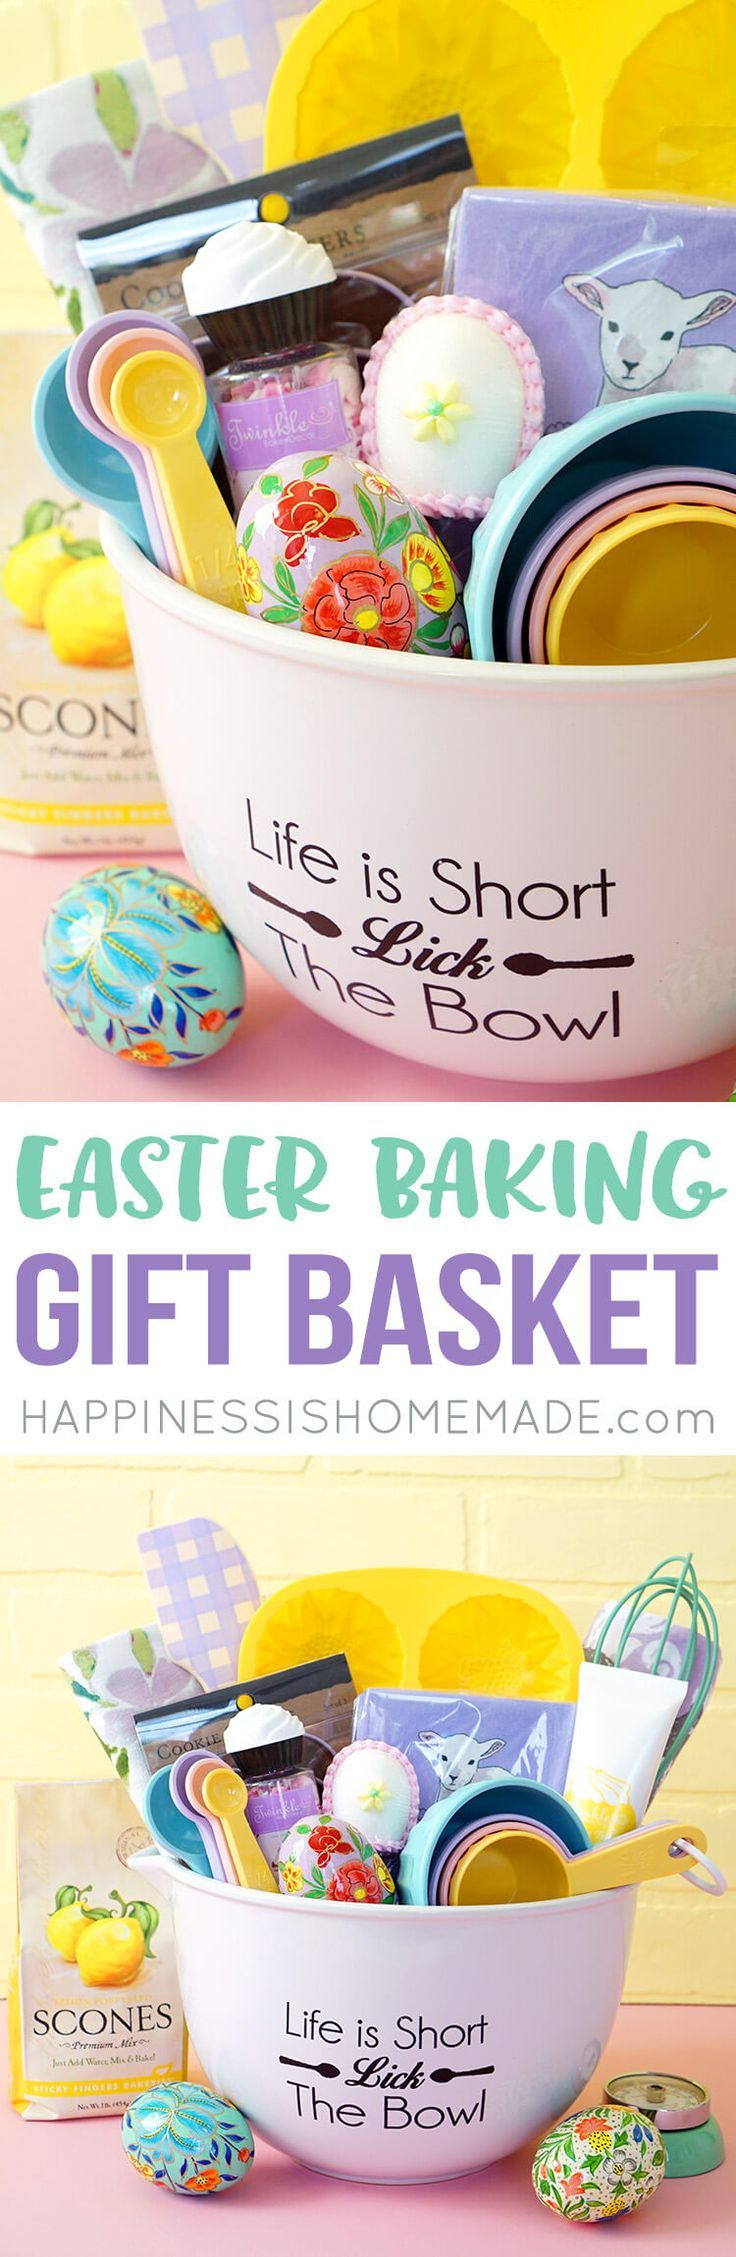 Easter Baking Gift Basket: Surprise your hostess with this fun gift basket featuring cute pastel baking goods and spring treats from Cost Plus World Market!